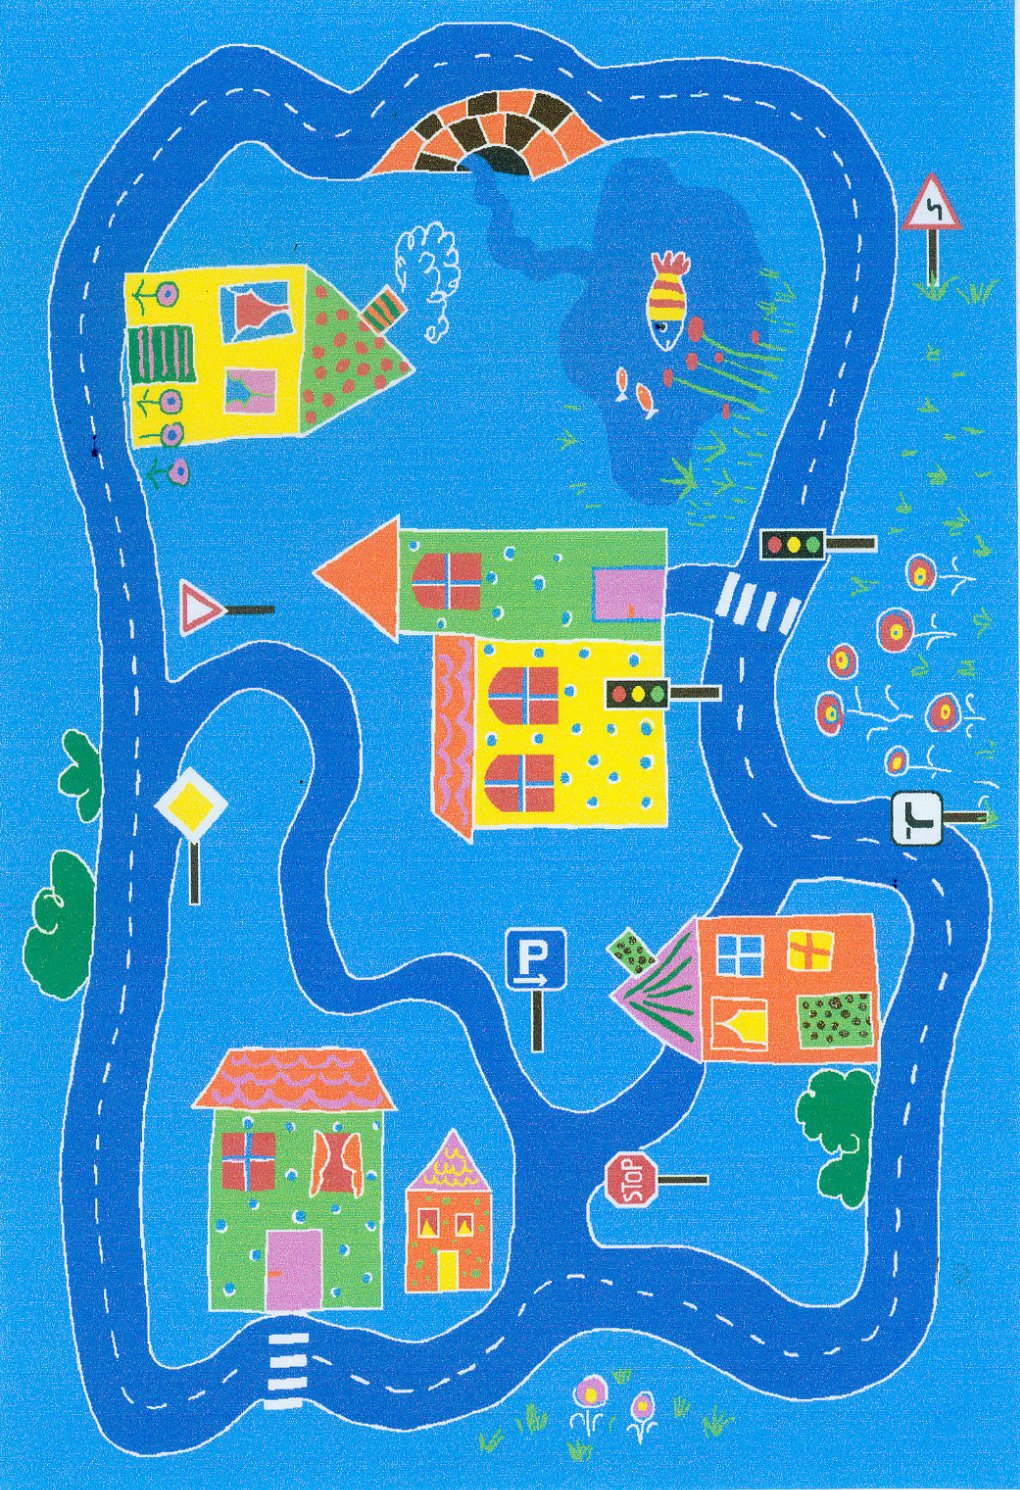 W. Eulberg Kollektion carpet for kids Spielteppich City Modell 2 160 x 240 cm